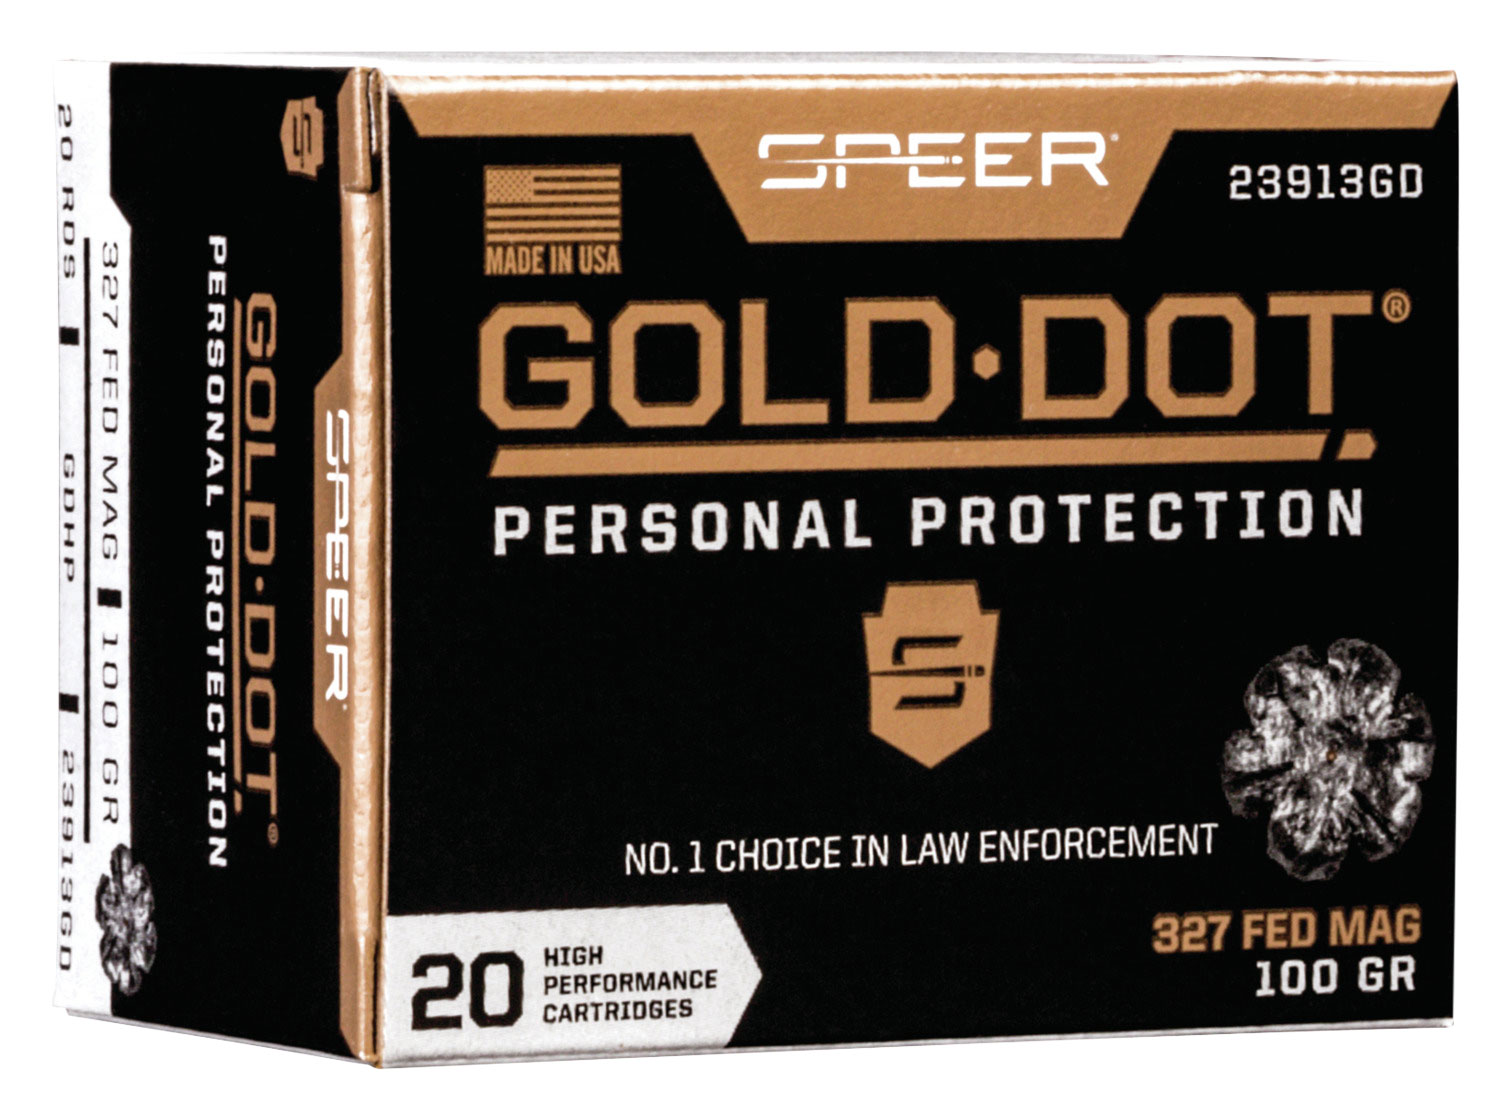 SPR GOLD DOT 327FED 100GR HP 20/200